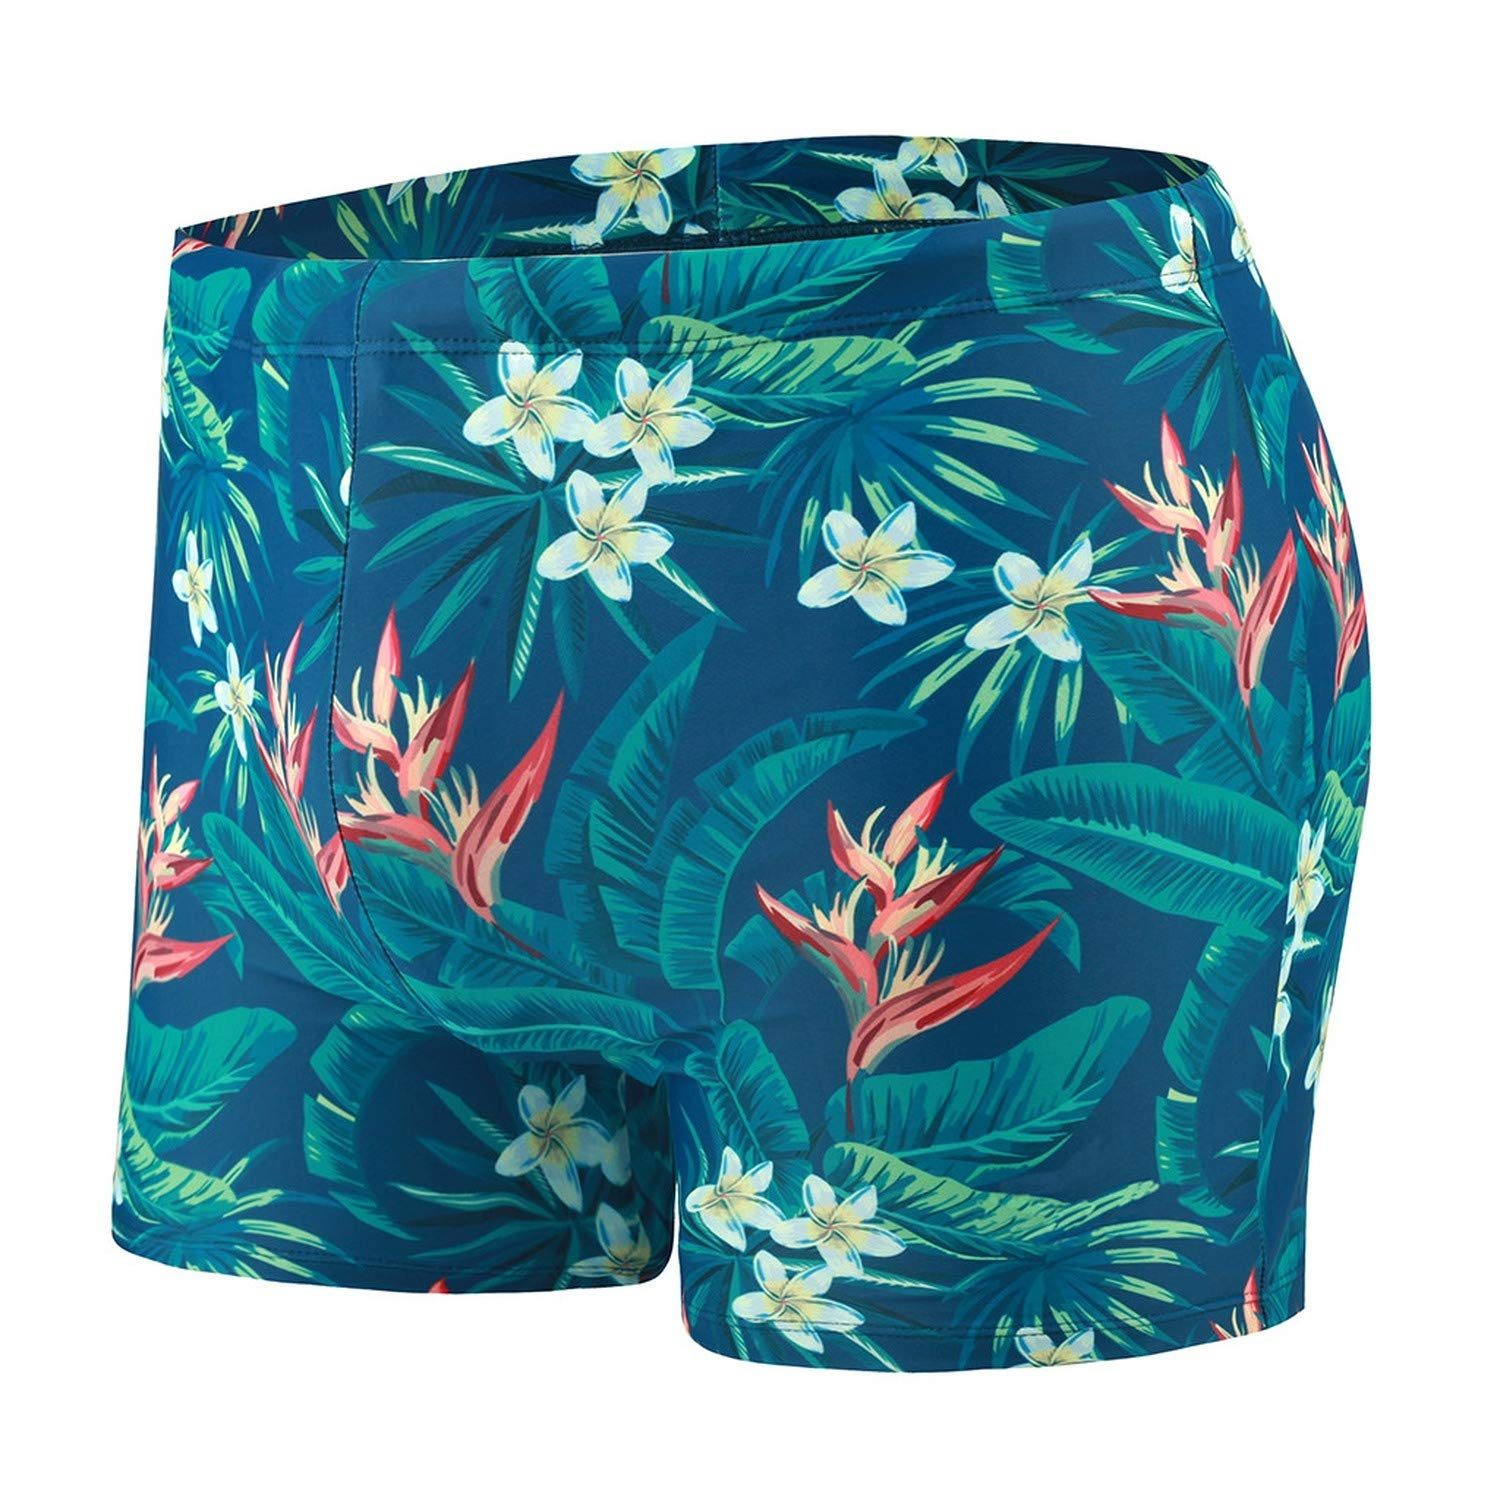 Ytb-home Outdoor Water Sports Beach Shorts Multicolor Swimming Sports Shorts N20